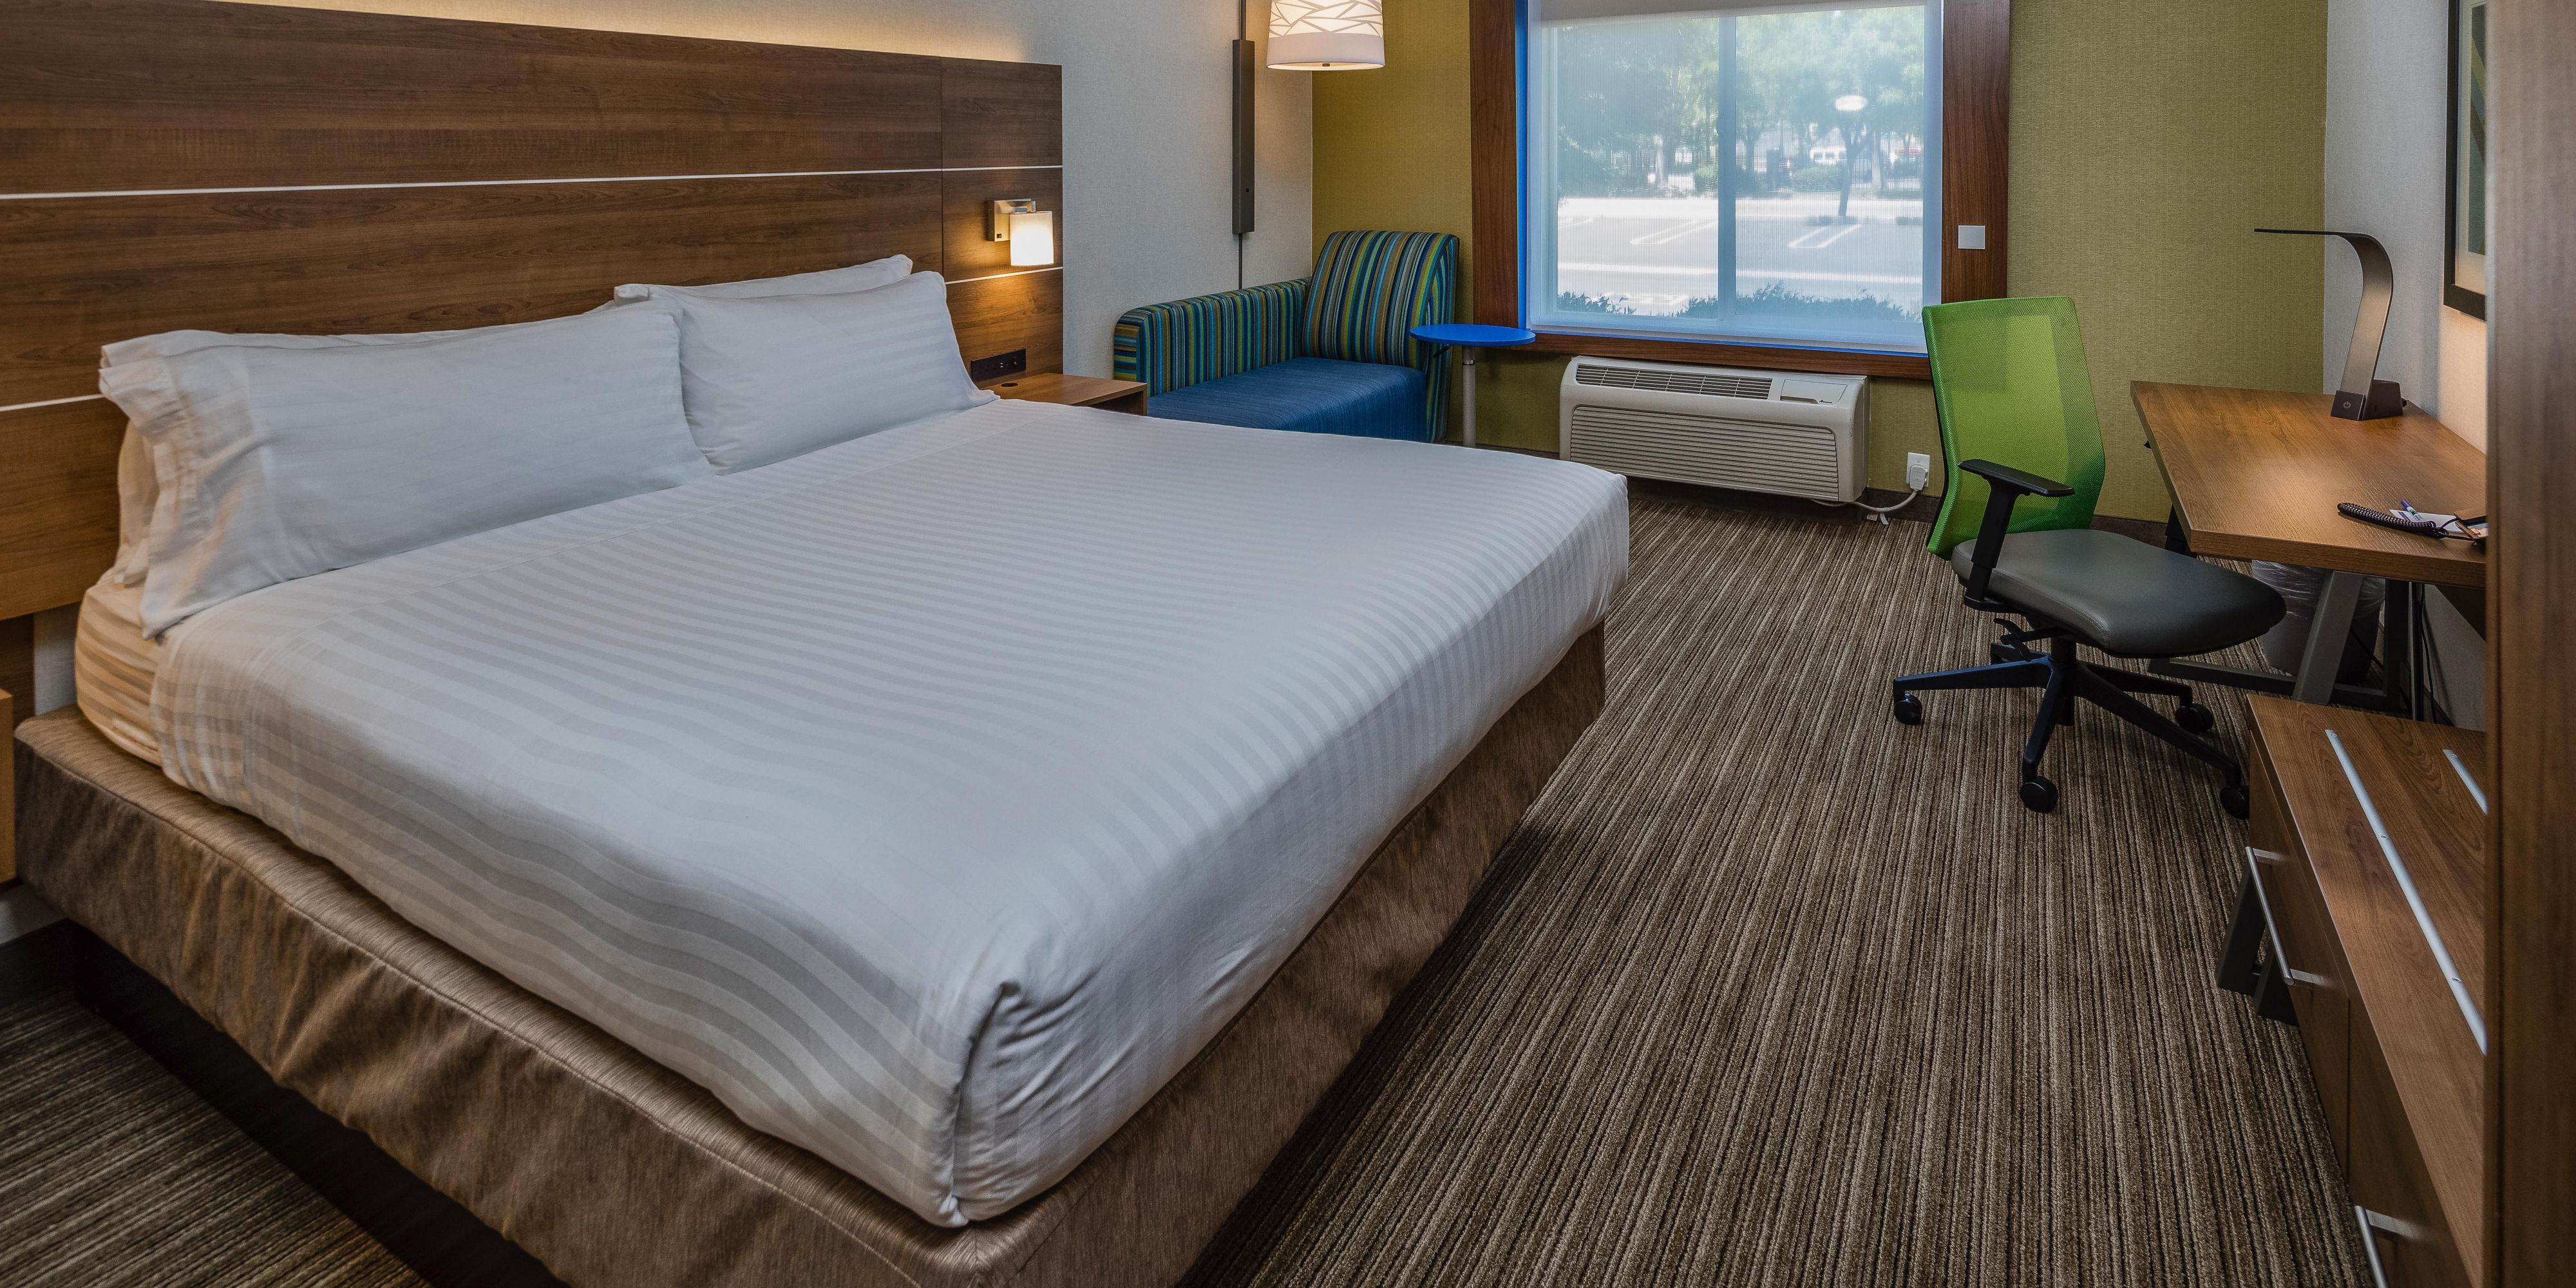 Holiday Inn Express And Suites Modesto 5032455515 2x1